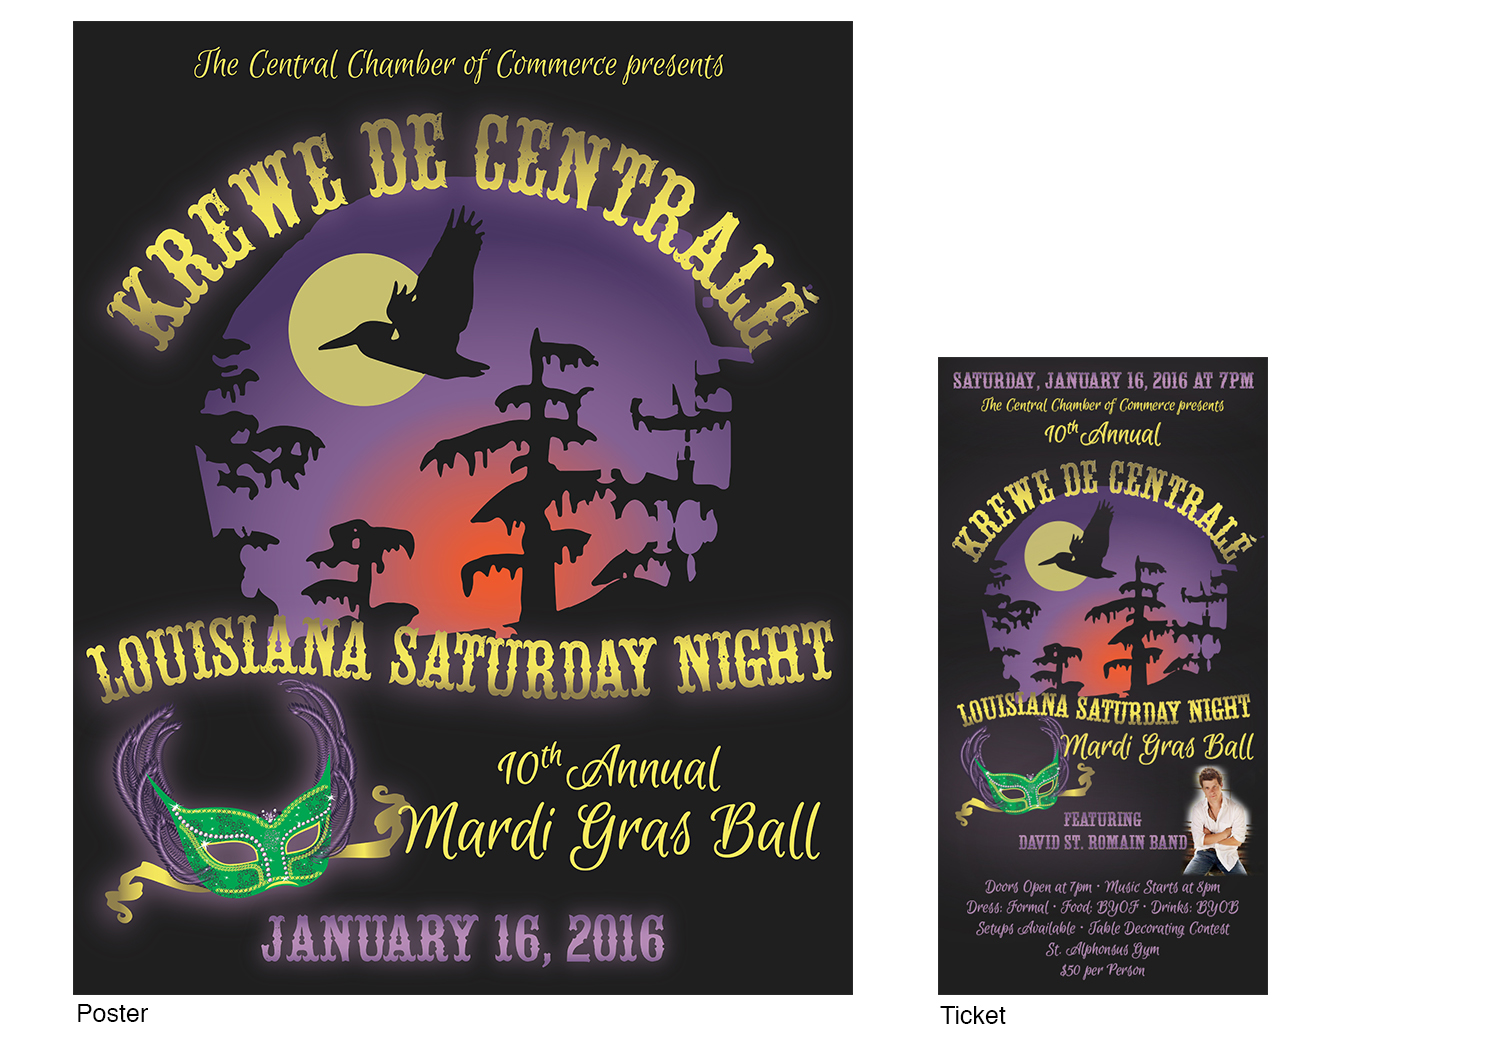 Event Posters & Tickets